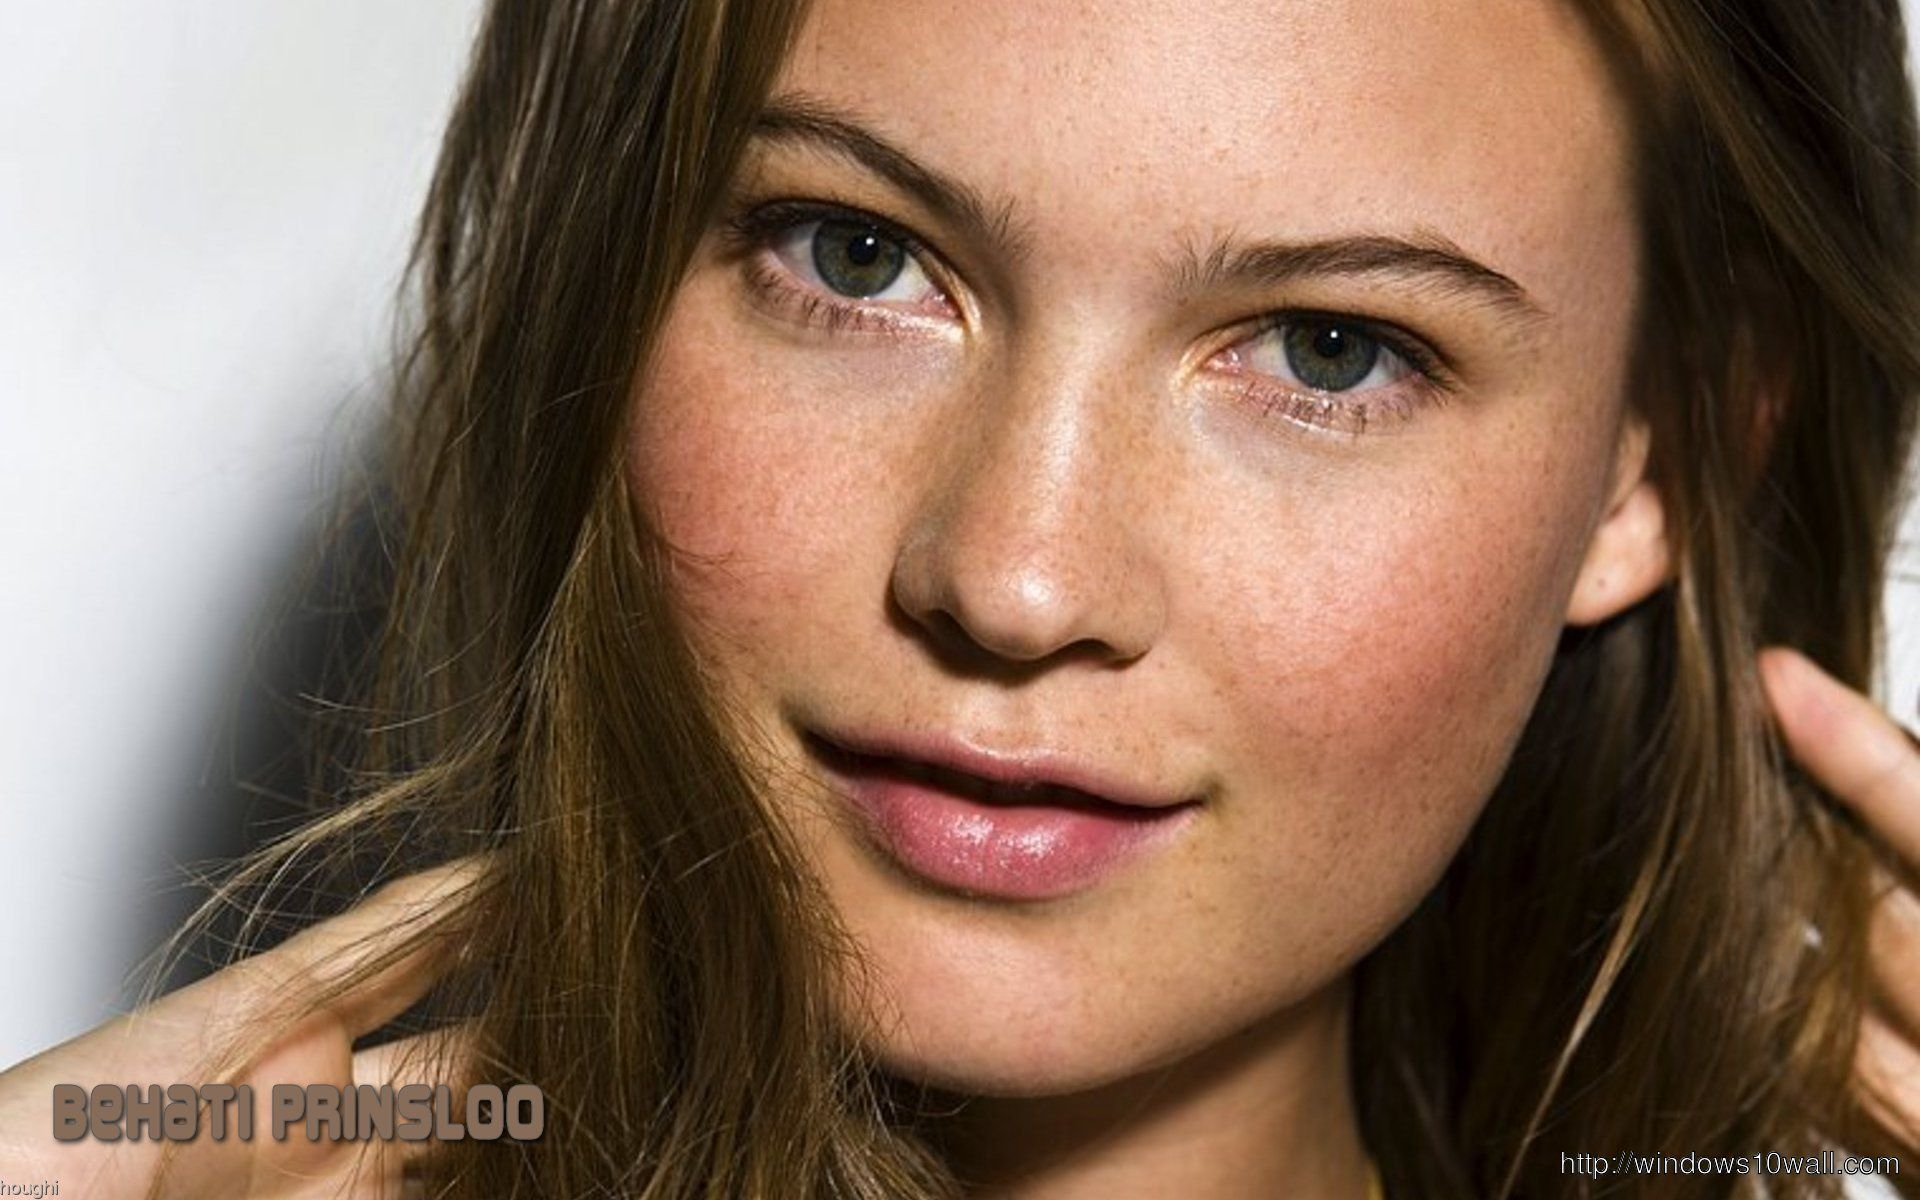 Behati Prinsloo CloseUp Background Wallpaper